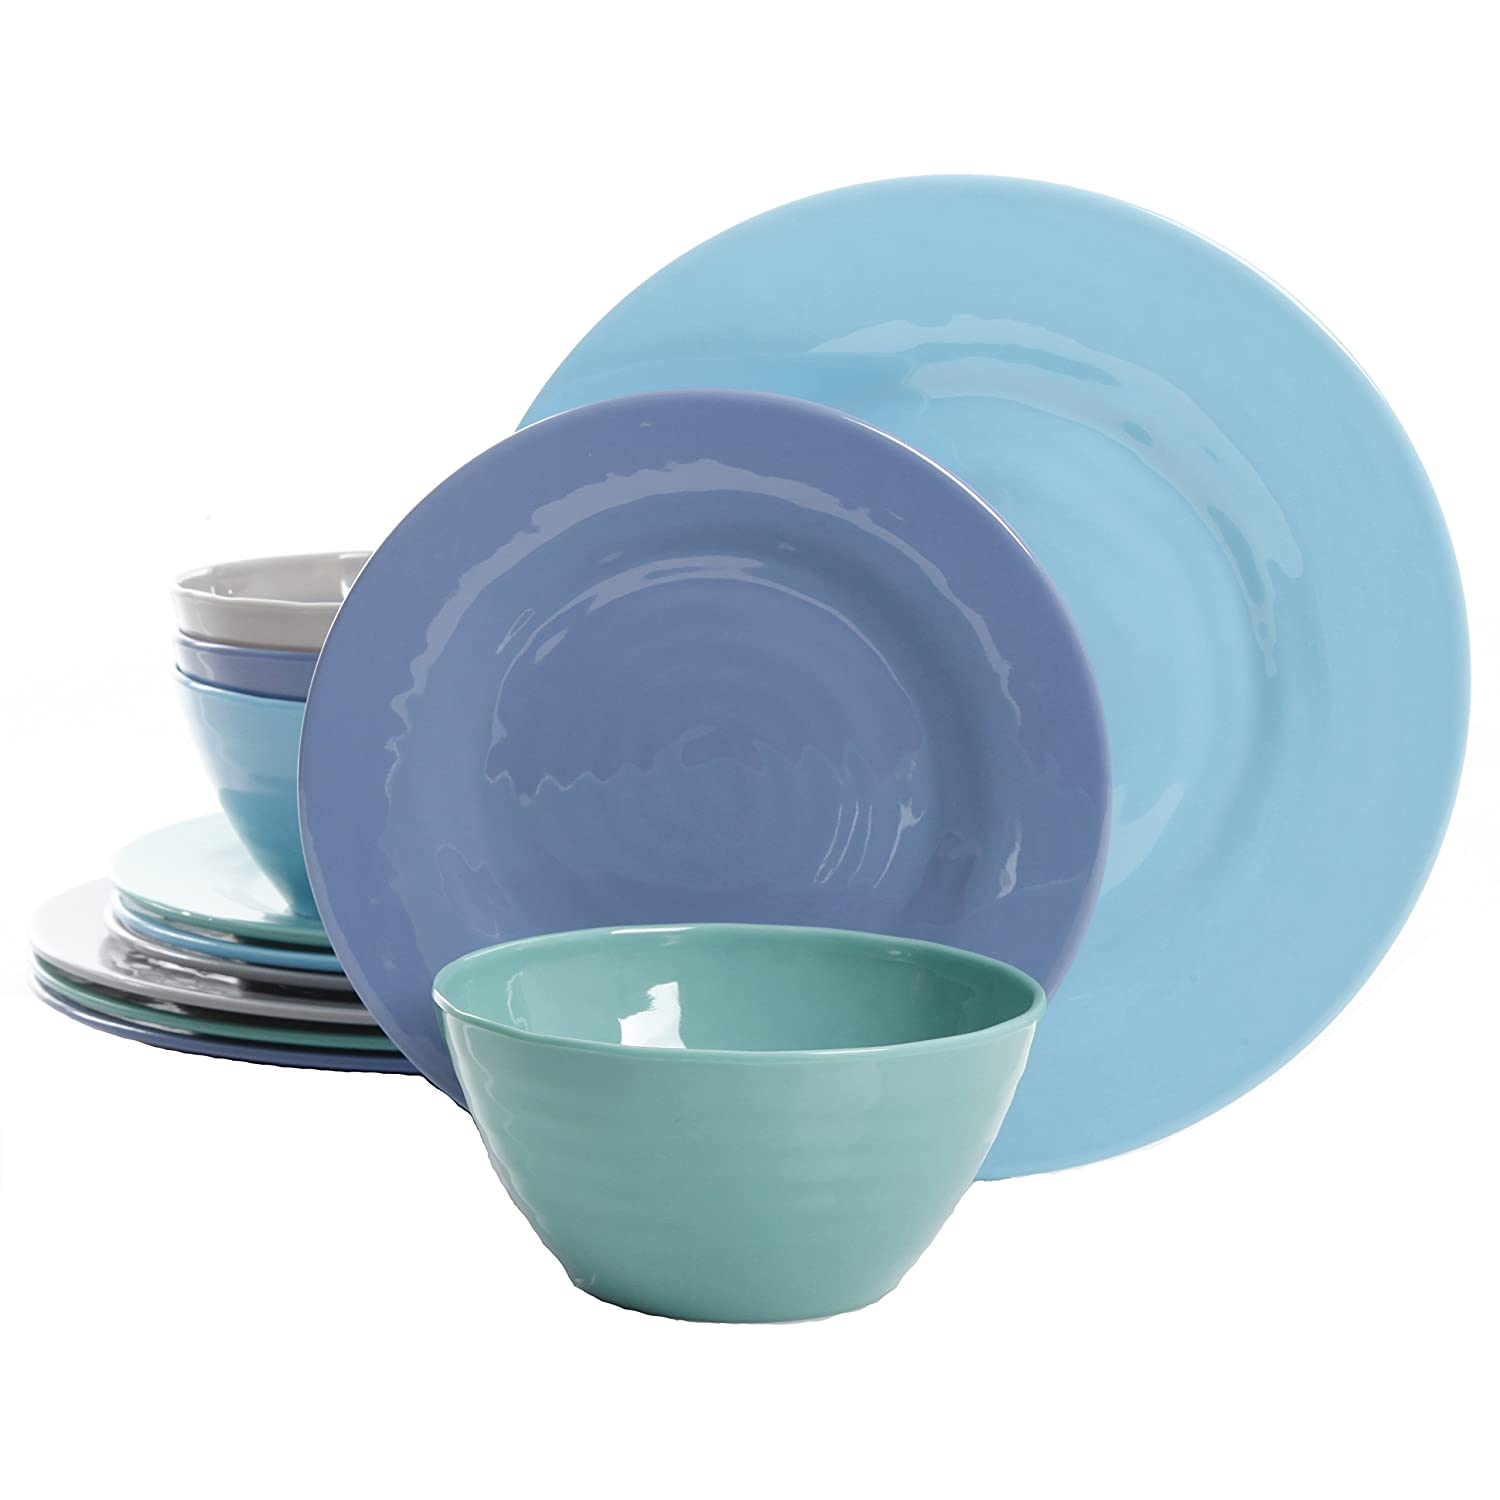 Gibson Overseas Brist 12-Piece Dinnerware Set Break /& Chip-Resistant Melamine Plates /& Bowls Indoor//Outdoor Blue Inc